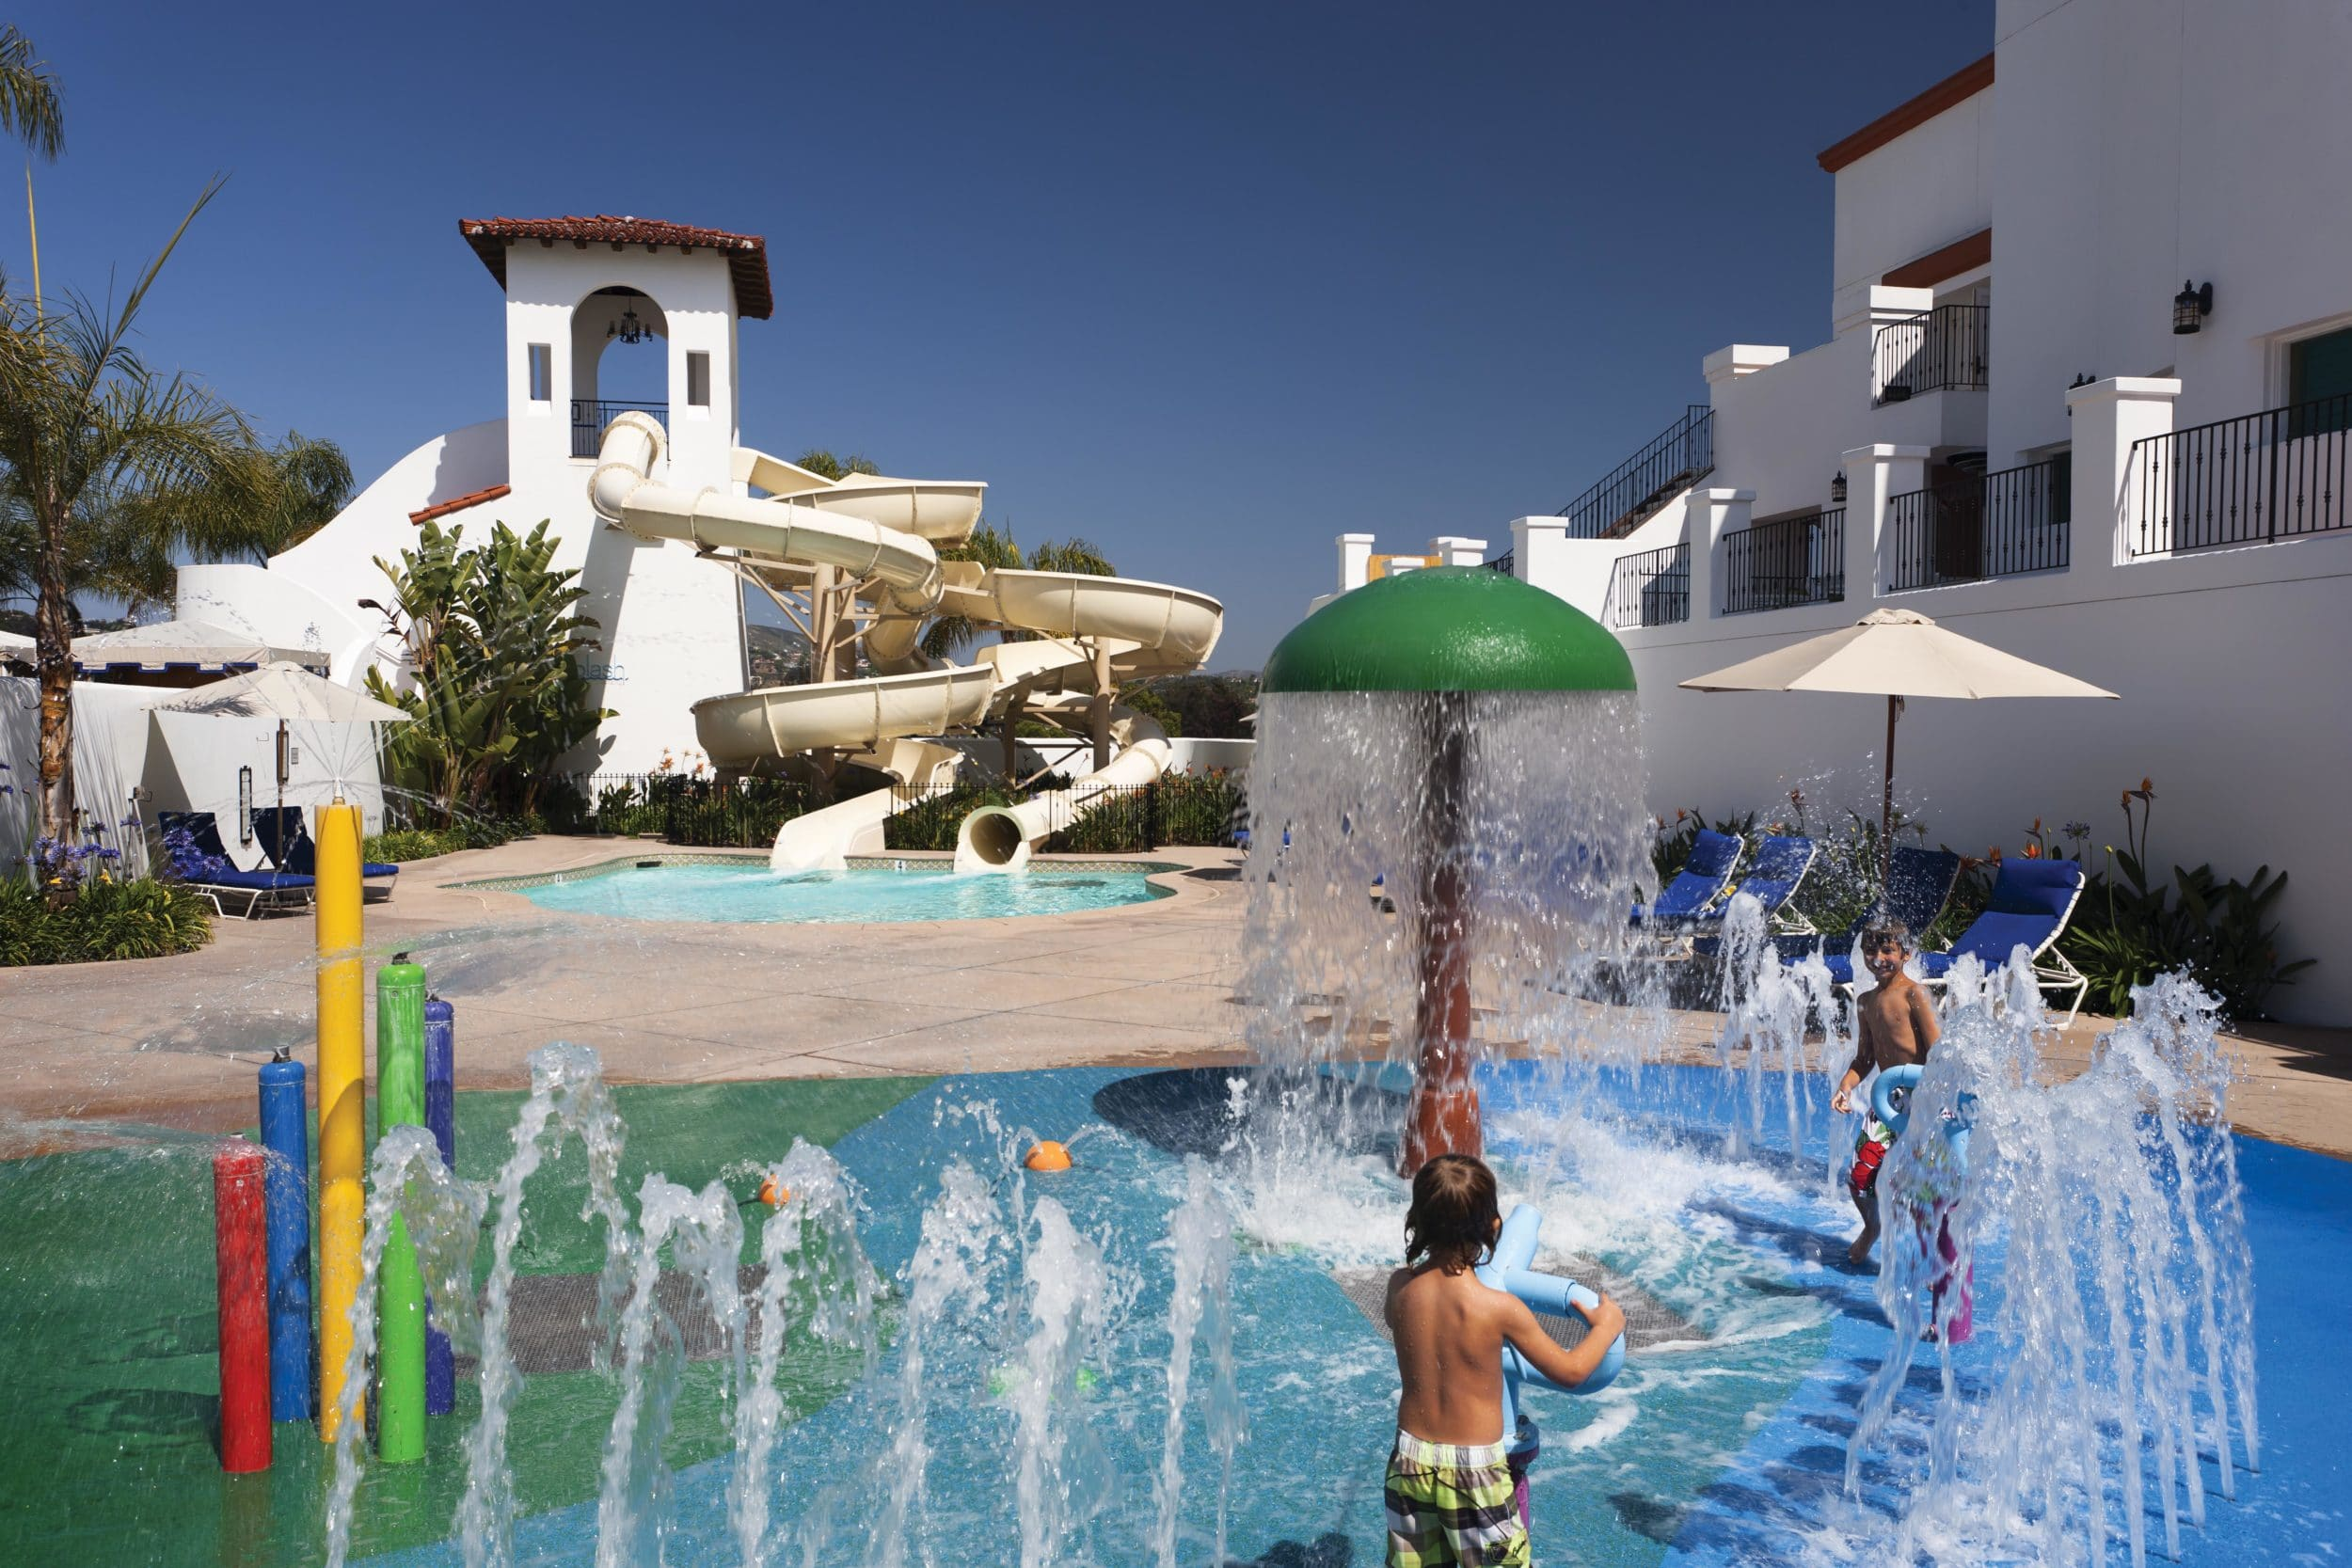 Kids play on the splash pad at Omni La Costa Resort with the water slide in the background.